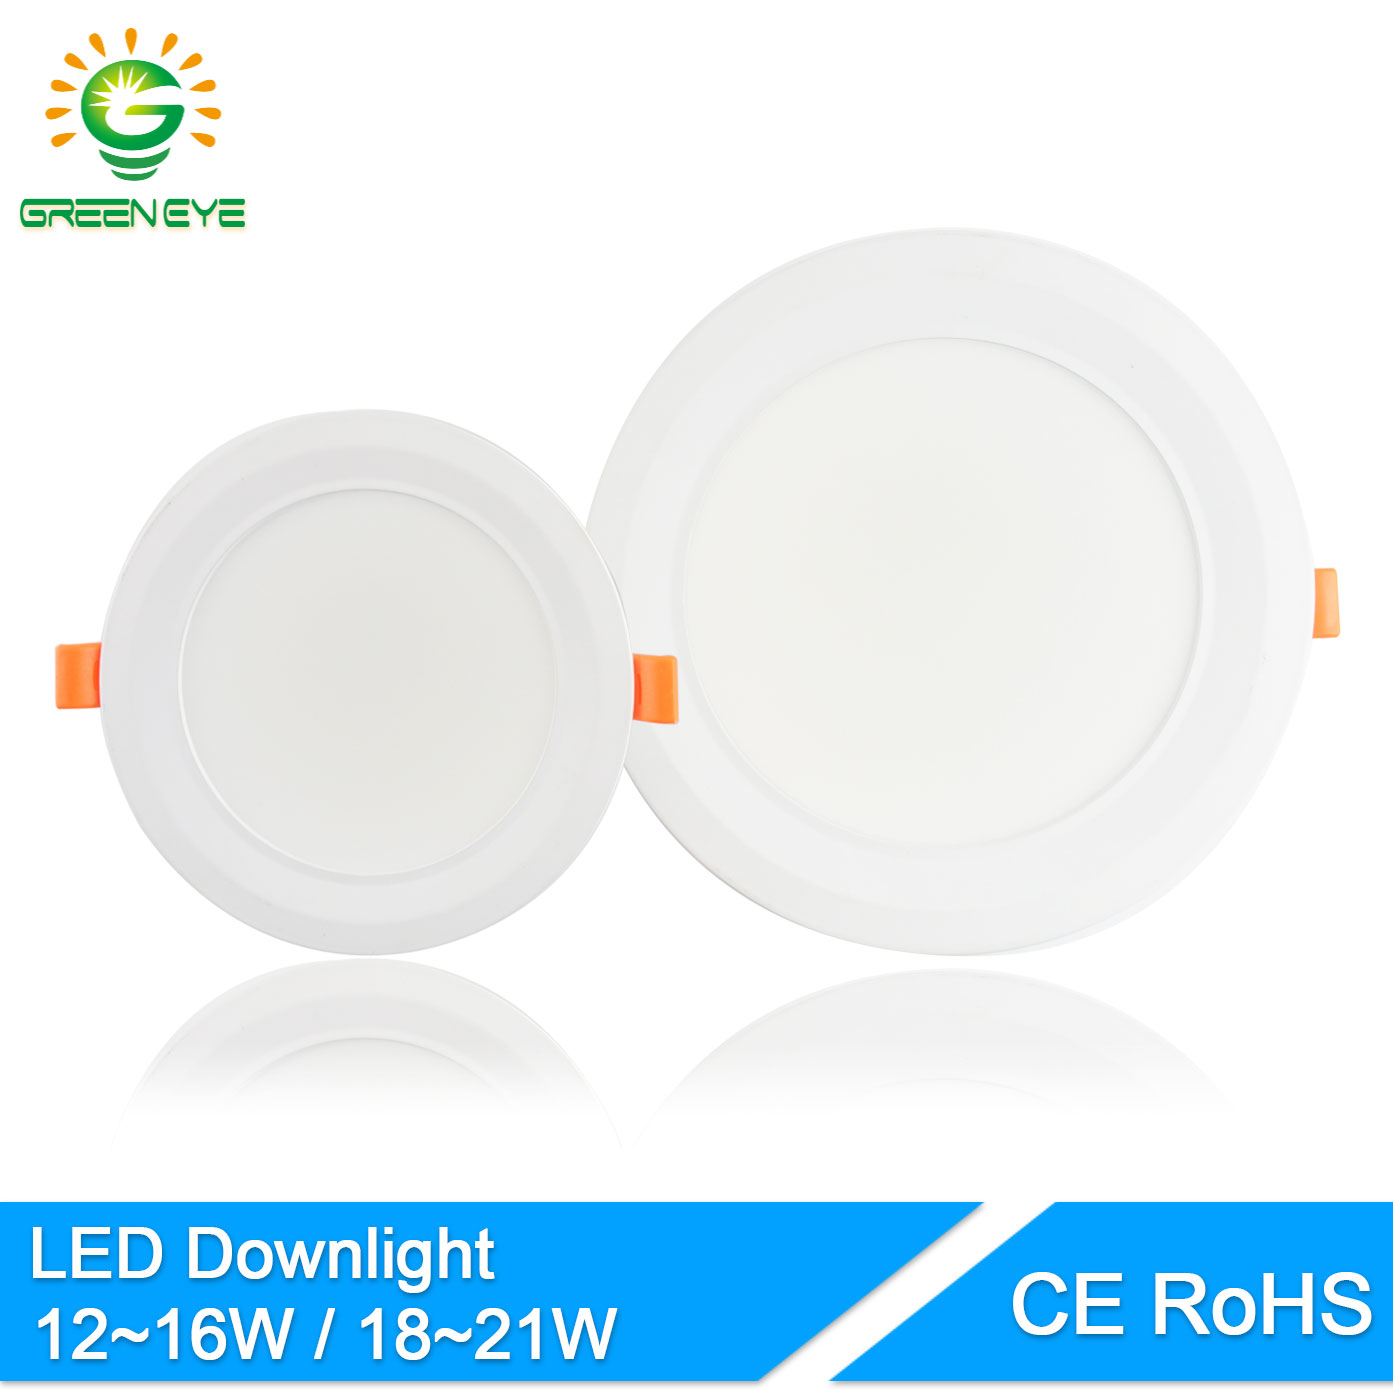 GreenEye Ultra Bright 12w 18w 6 / 7.5 Inch Aluminium LED Downlight 220v Spot Plafond LED Down Light Lampen Verlichting Warm Koel Wit